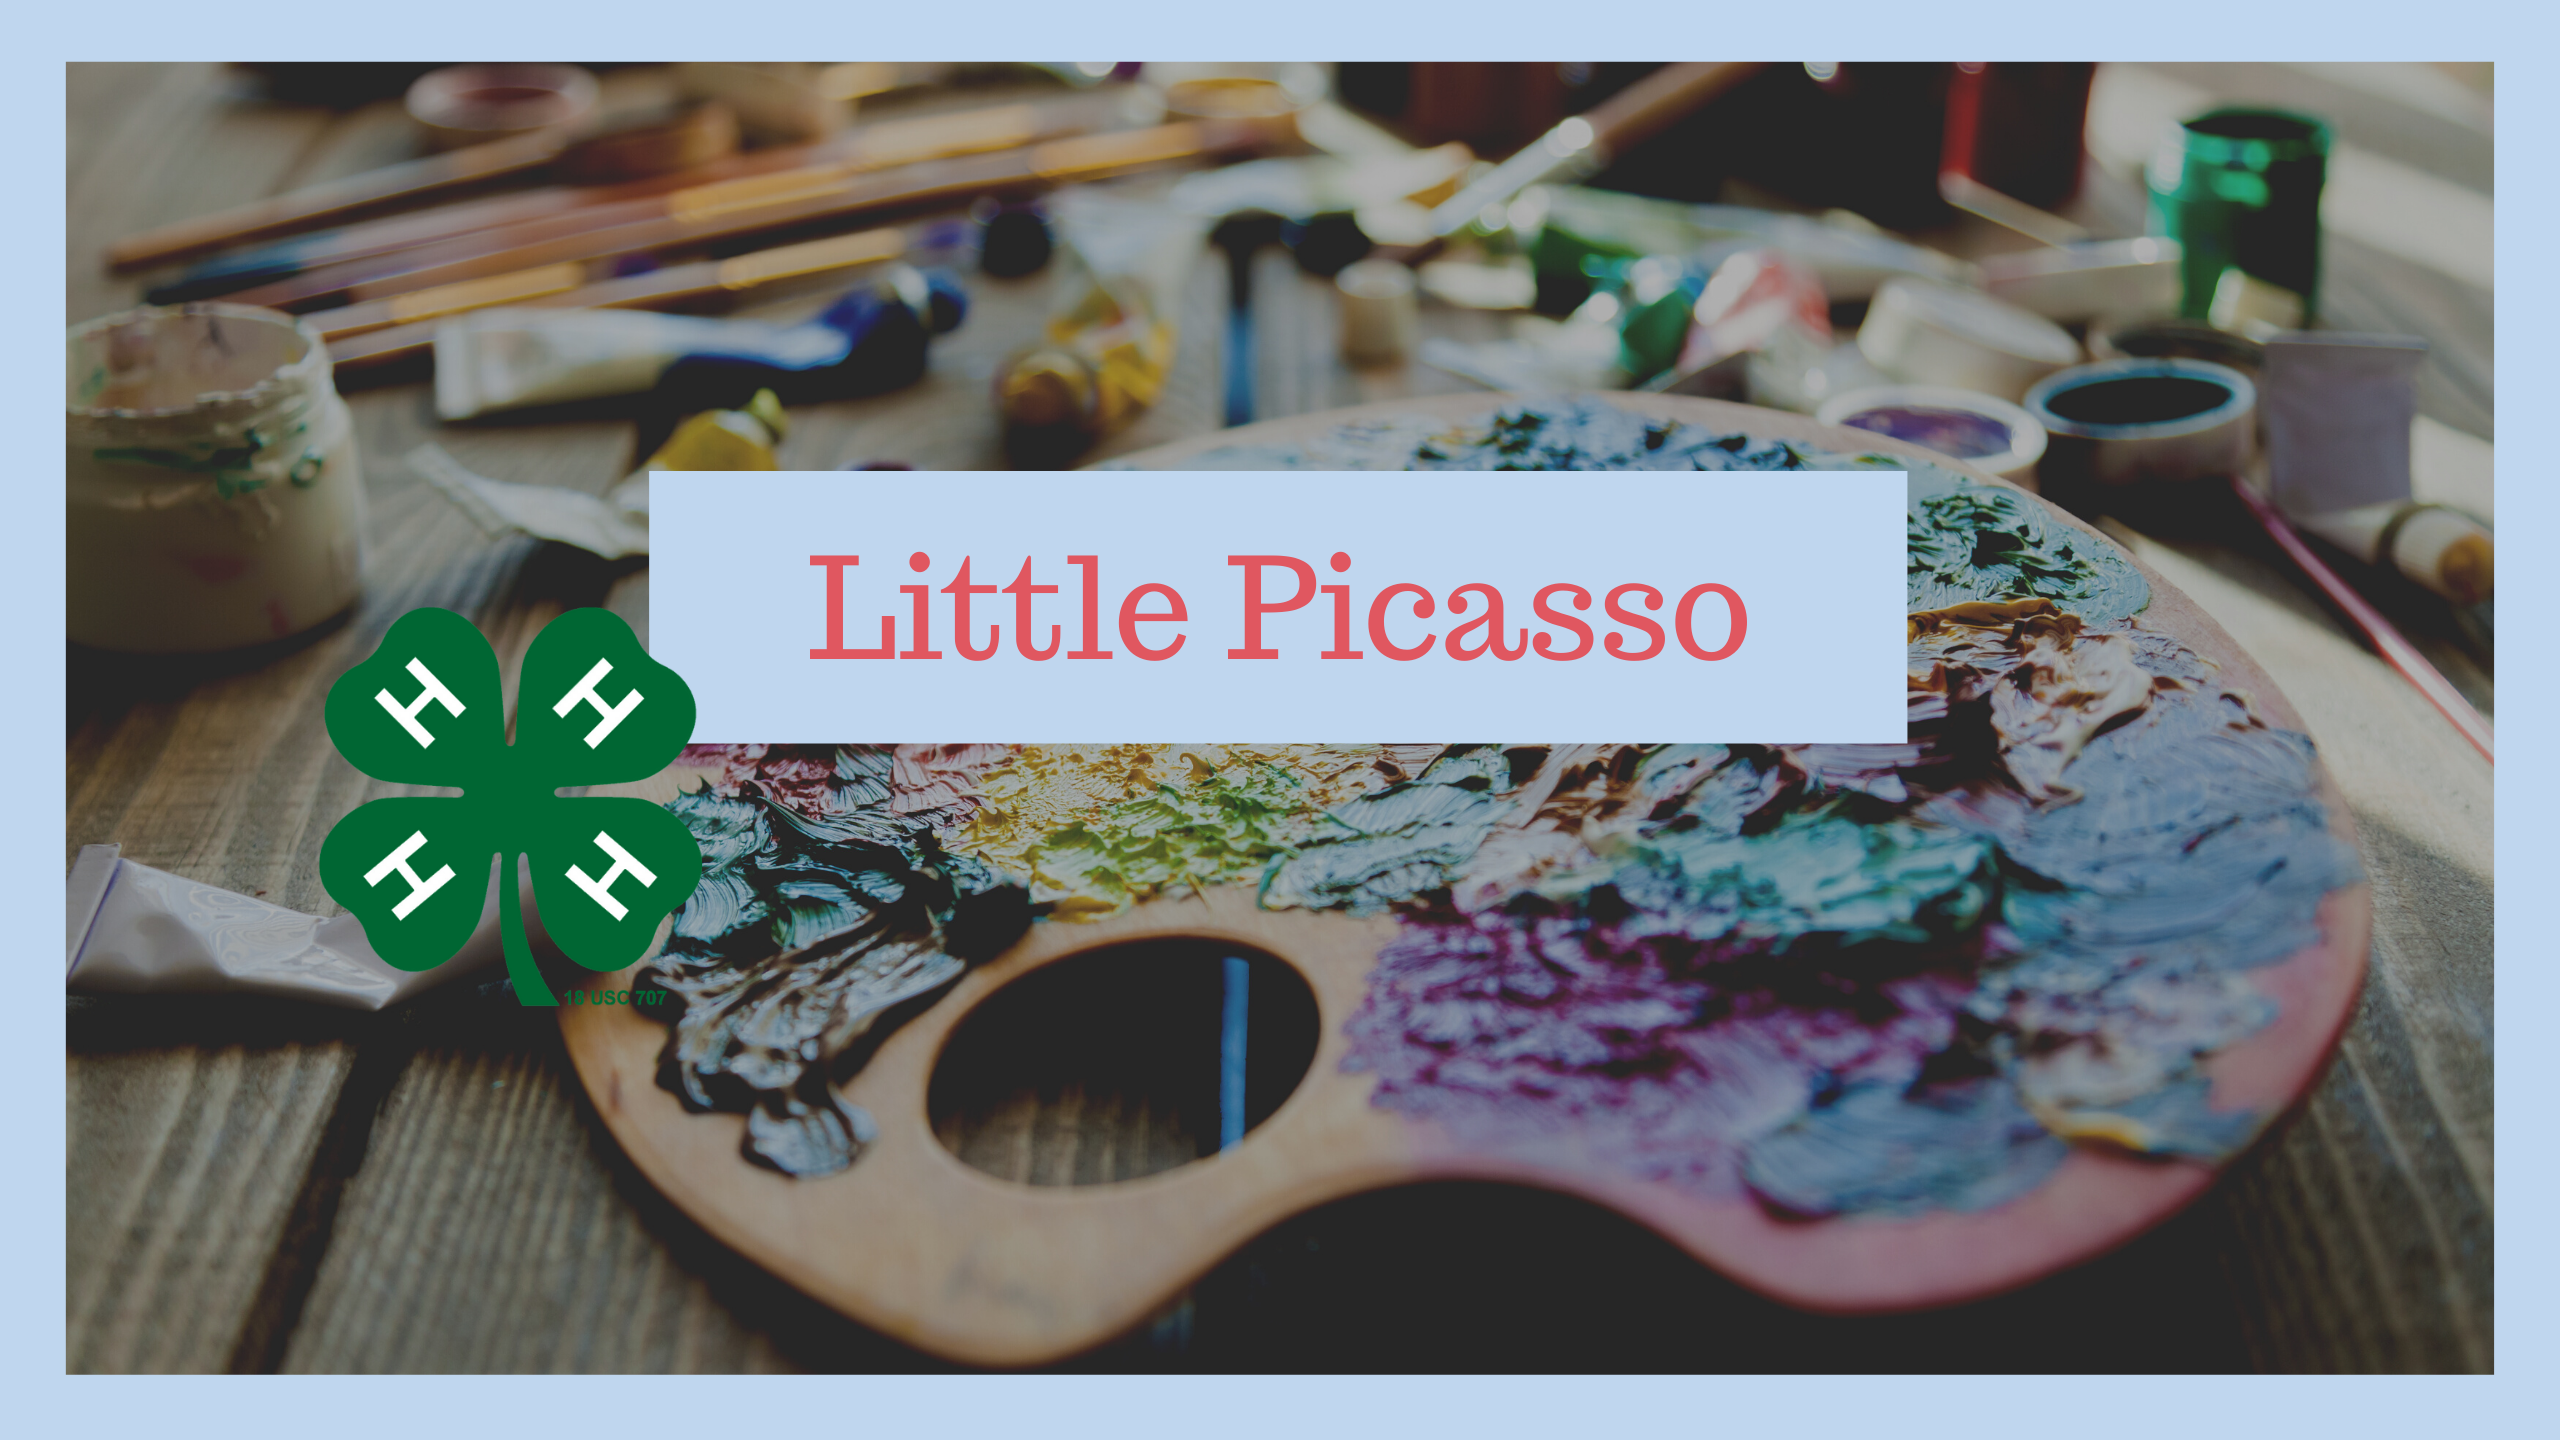 Little Picasso flyer image